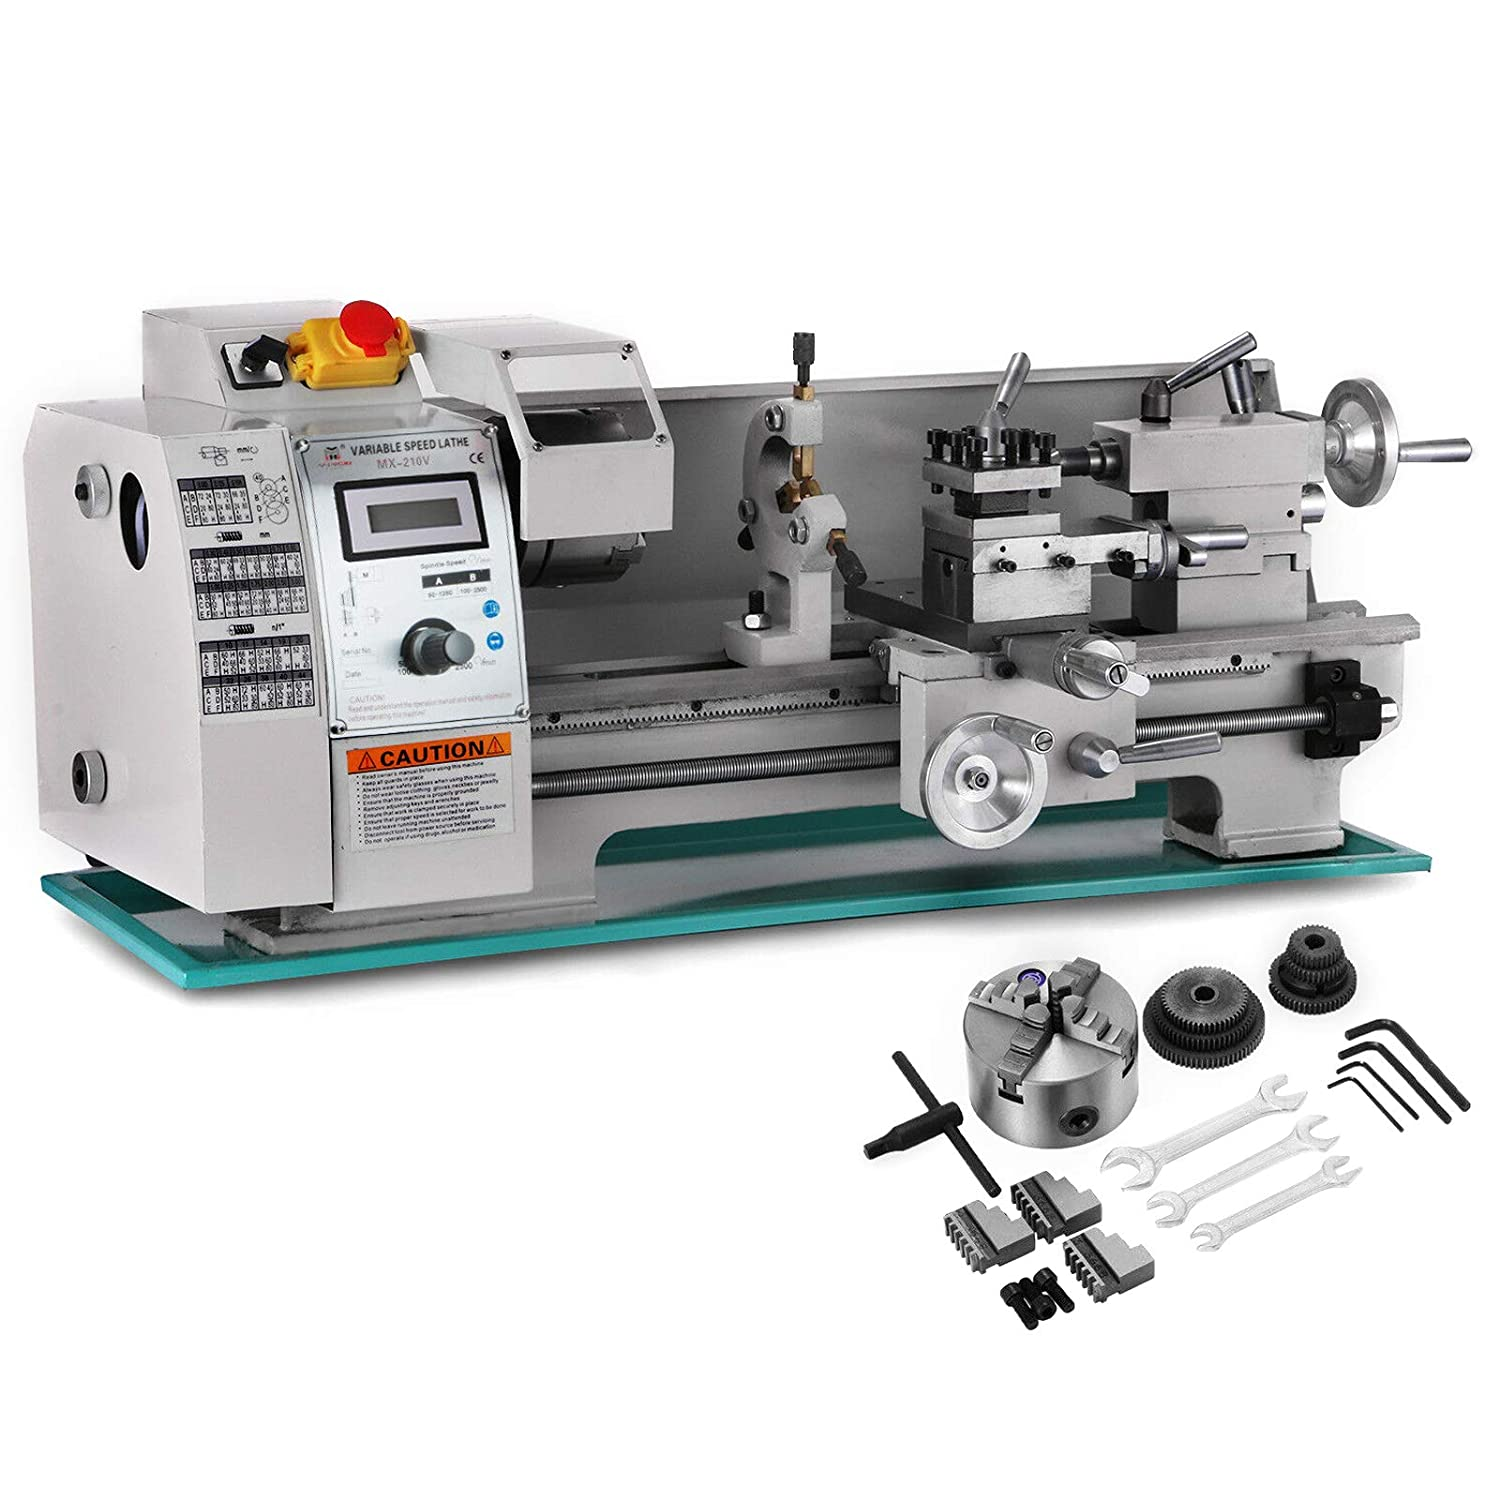 Best gunsmith lathe with attractive features!